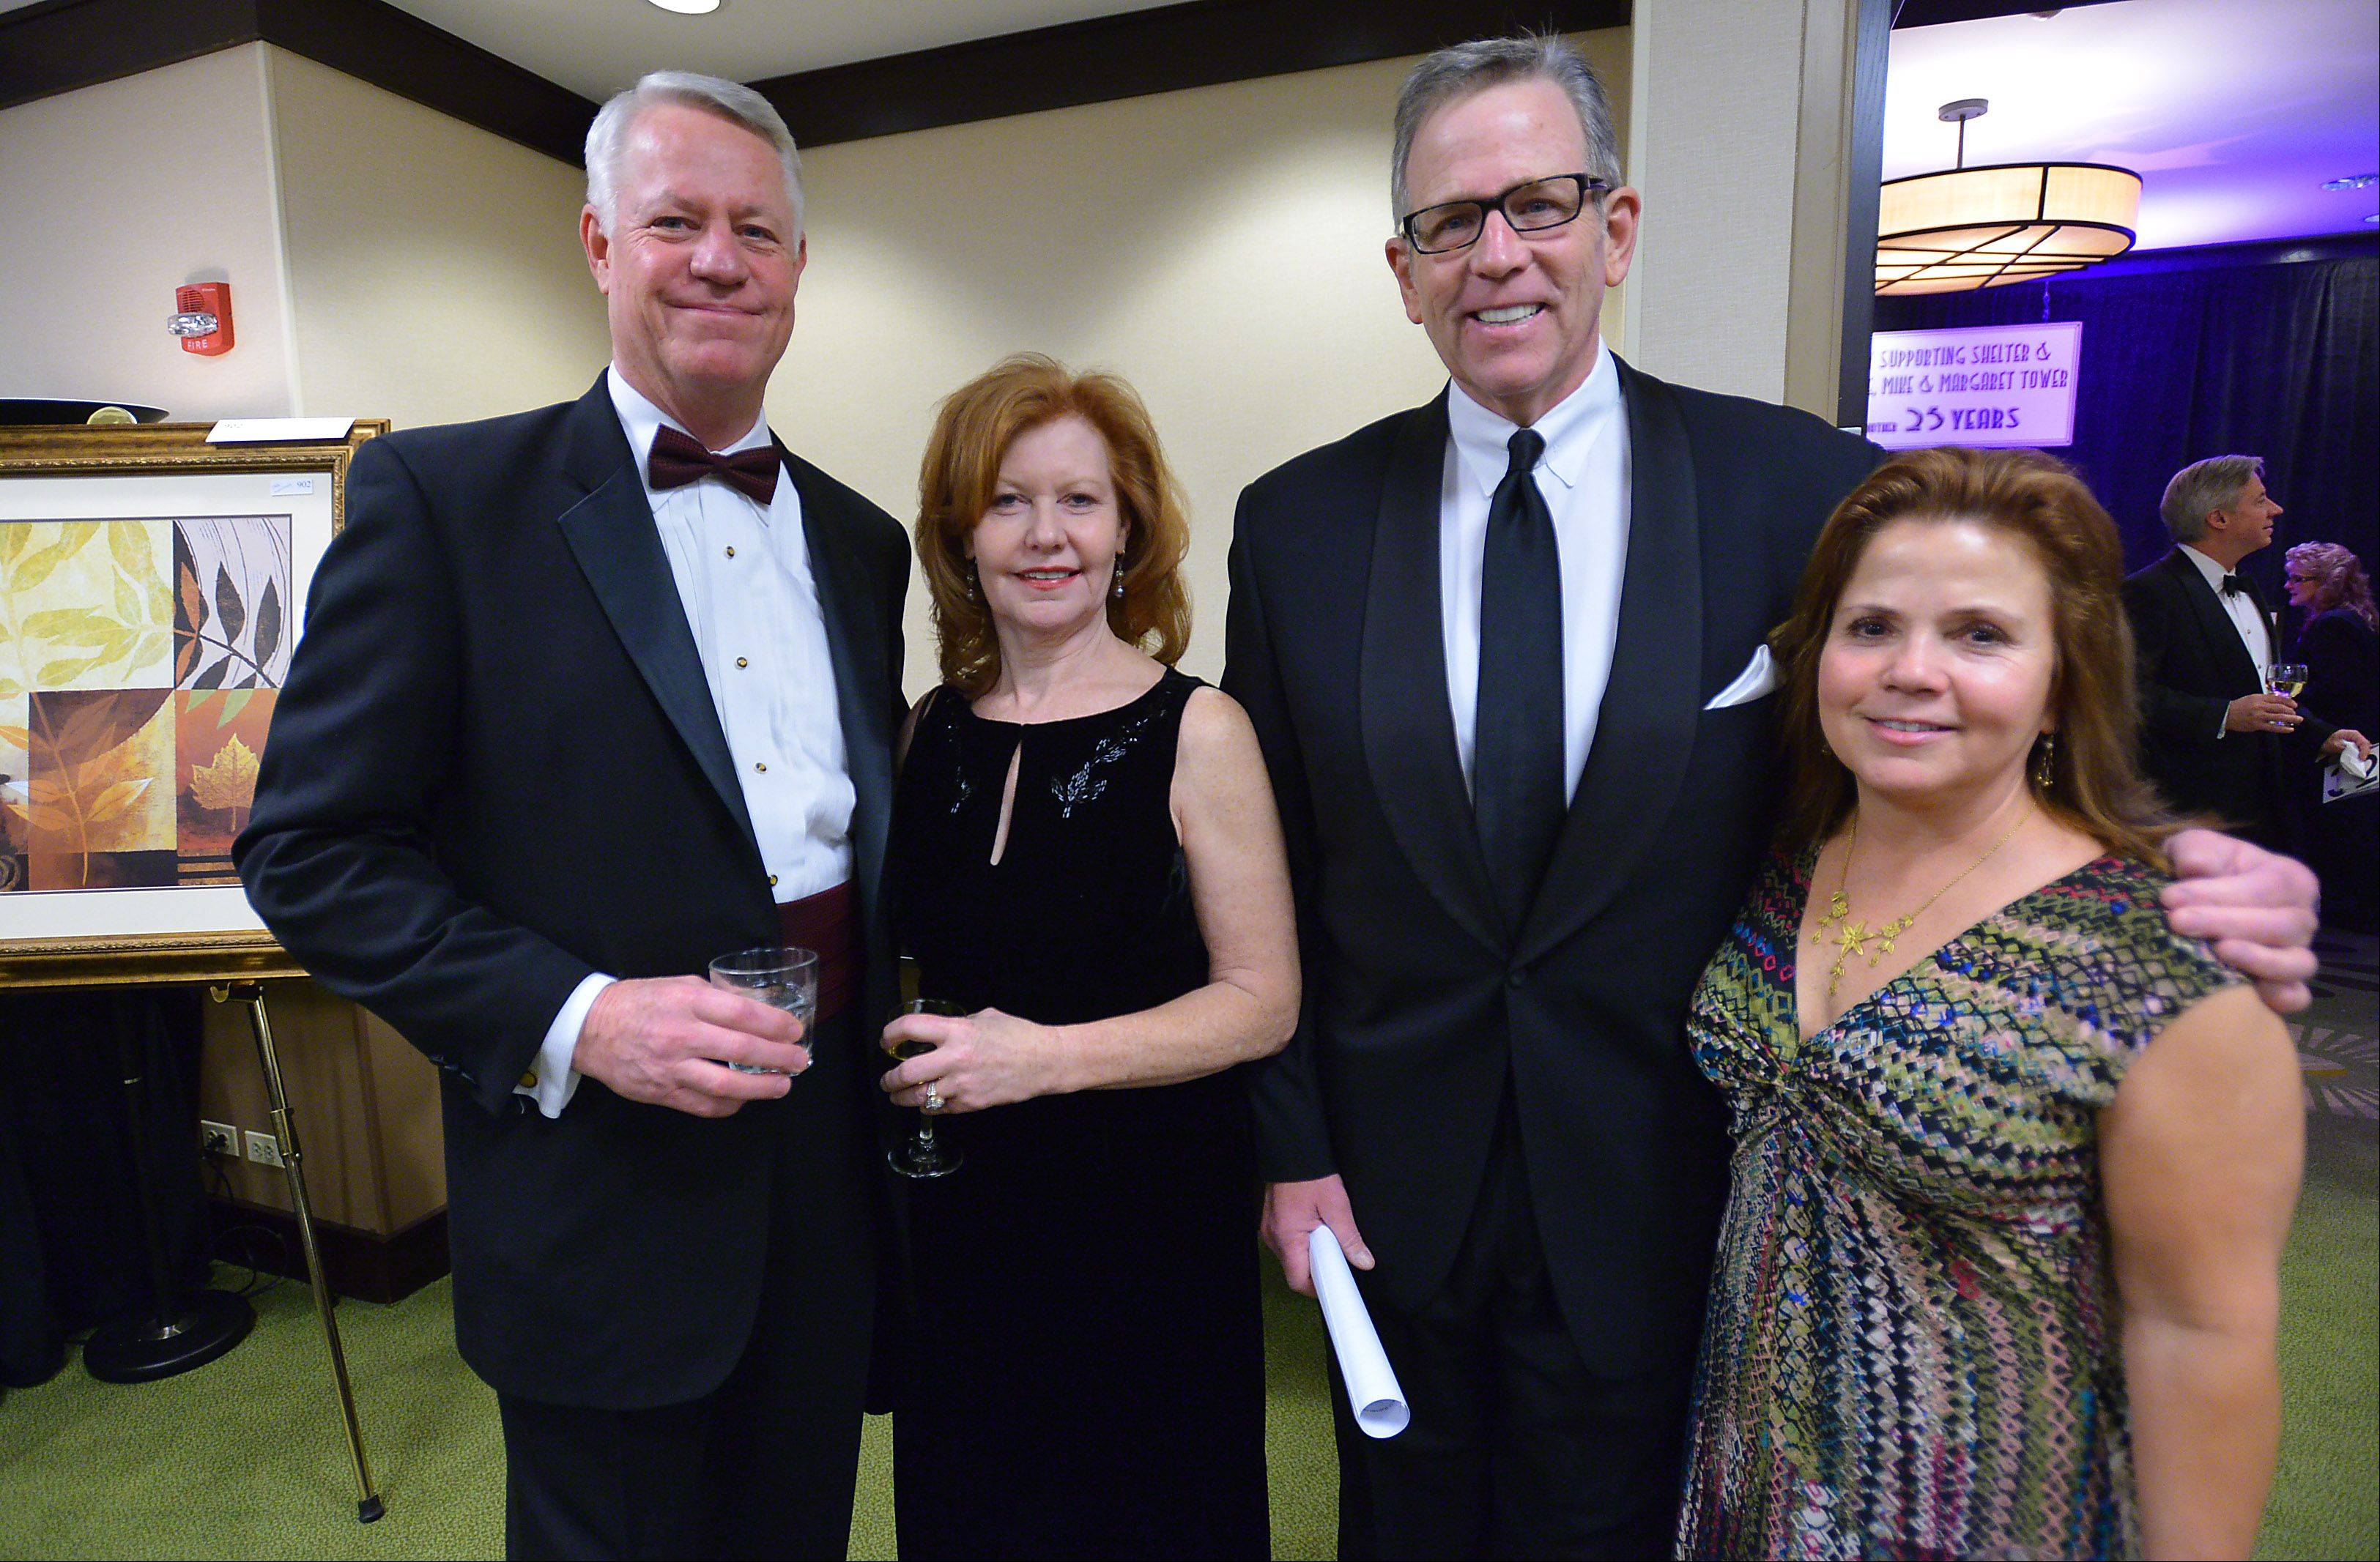 Jeff and Gloria Heck of Antioch, left, stand with Dick Johnson of NBC and Jan Golden of Arlington Heights at Friday's 25th anniversary Charity Ball for Shelter Inc. at the Schaumburg Hyatt.